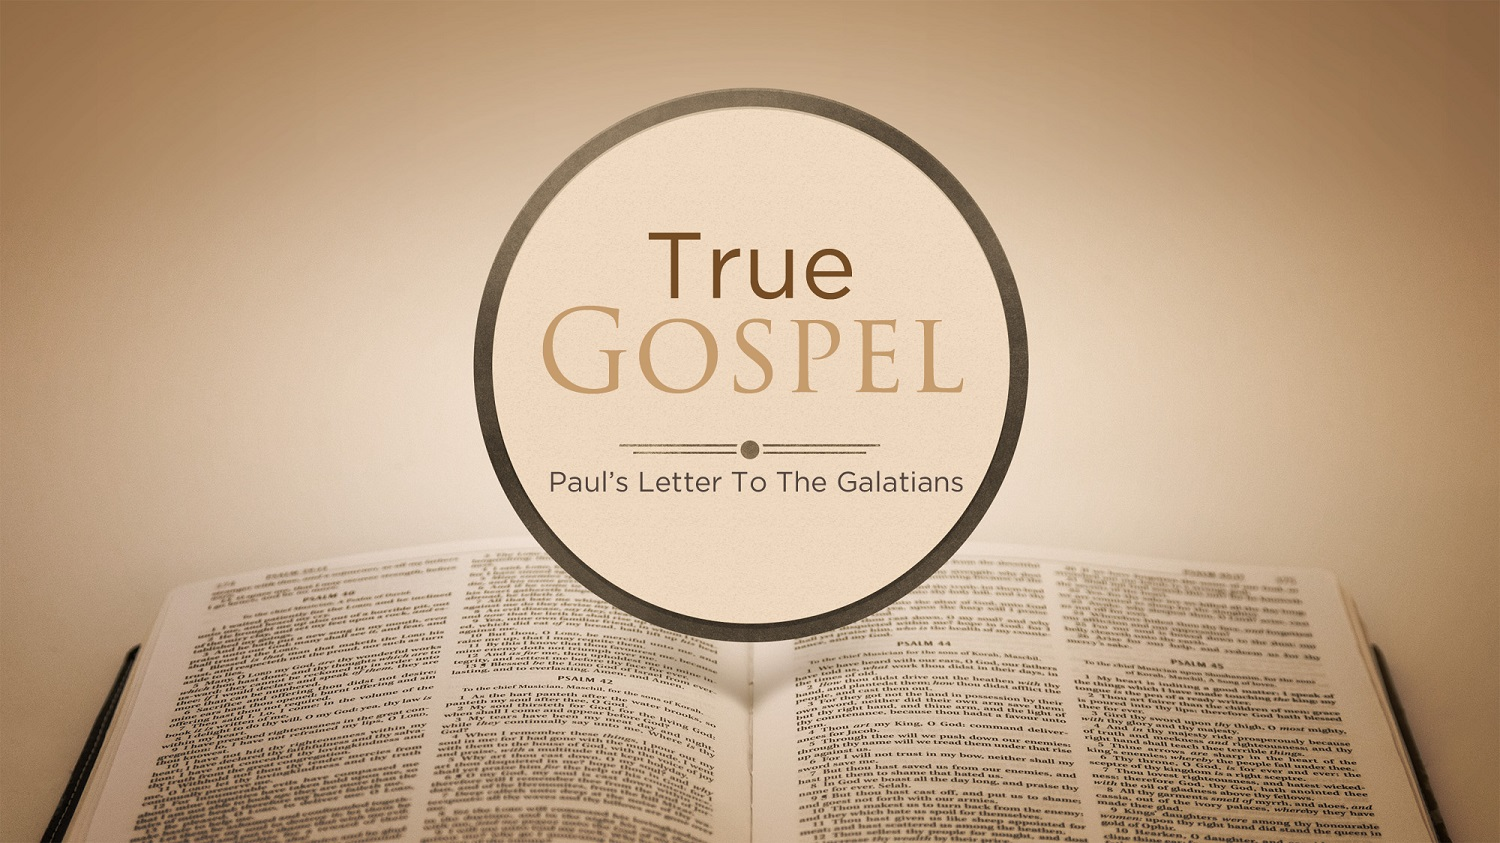 Galatians 3v26-29 The True Gospel Declares We Are Children of God